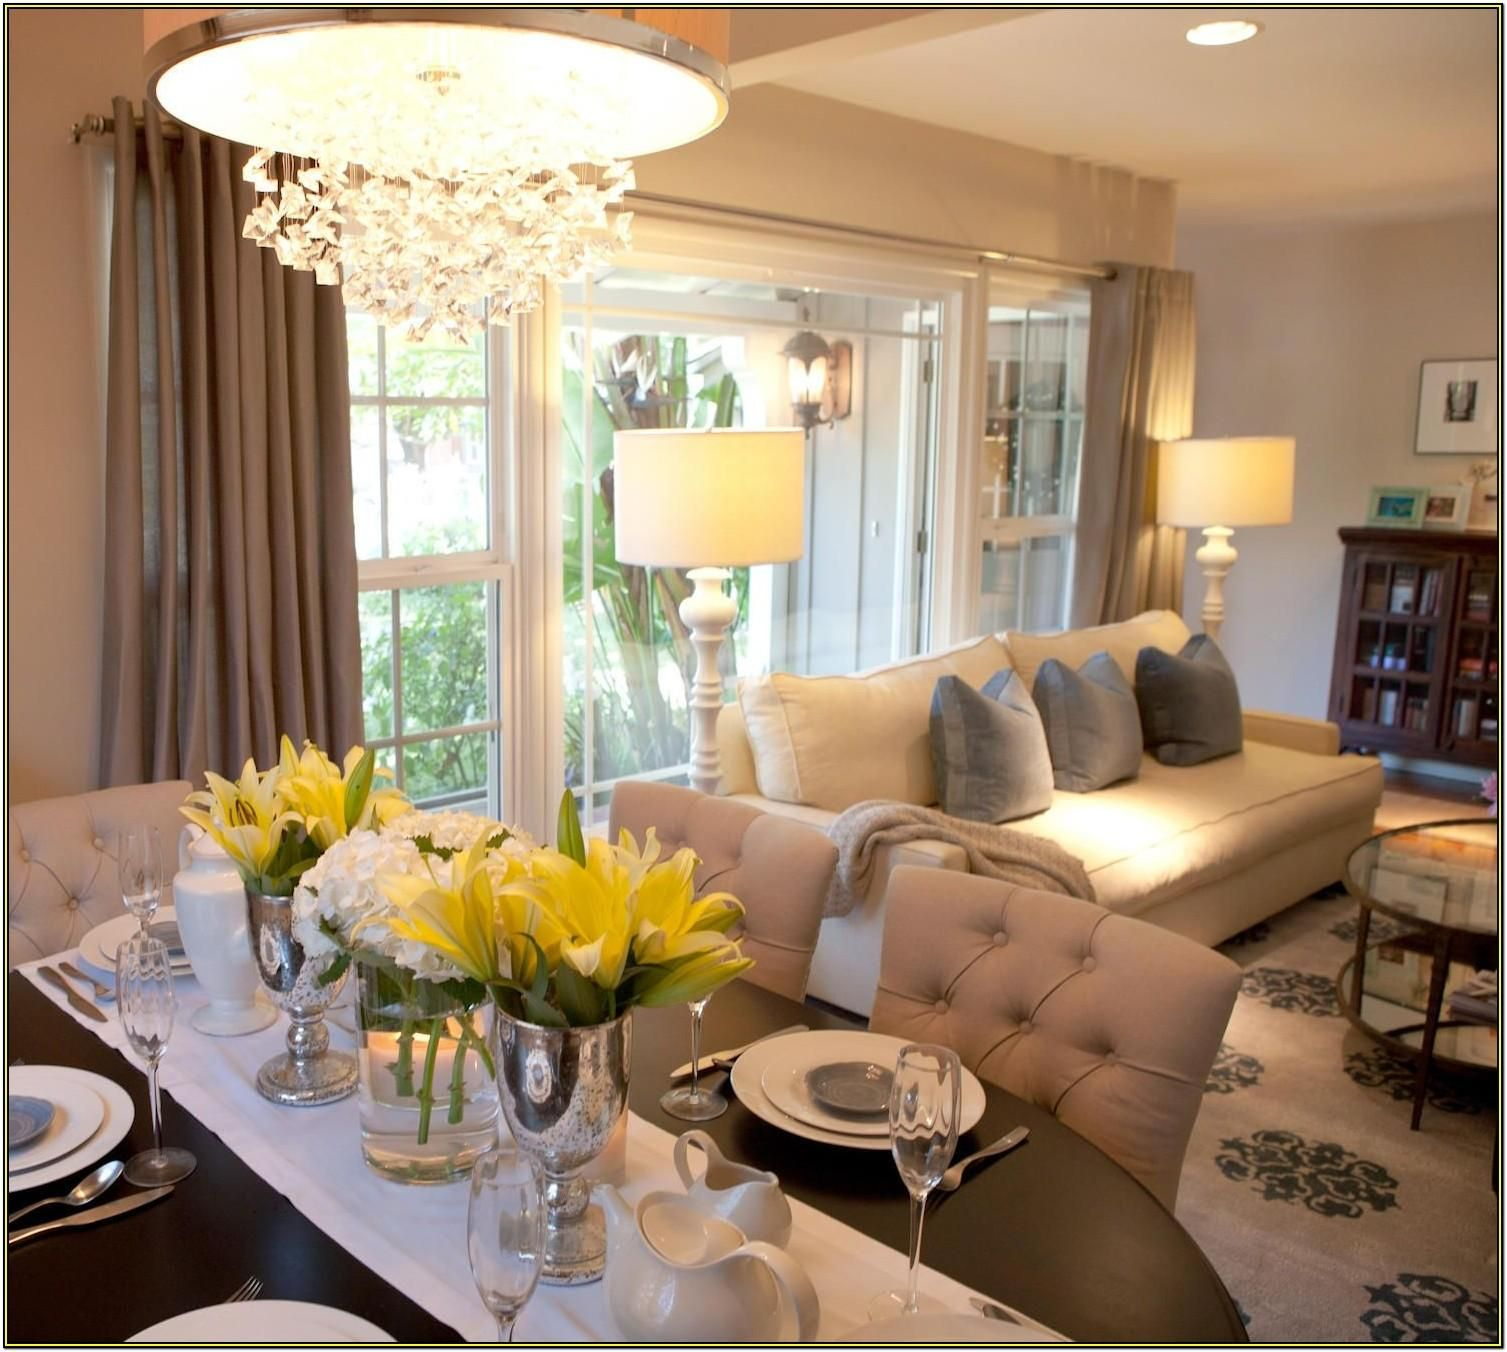 Joyous Layered Decor Ideas For Small Homes Living Room Dining Room Combo Dining Room Combo Interior Design Living Room